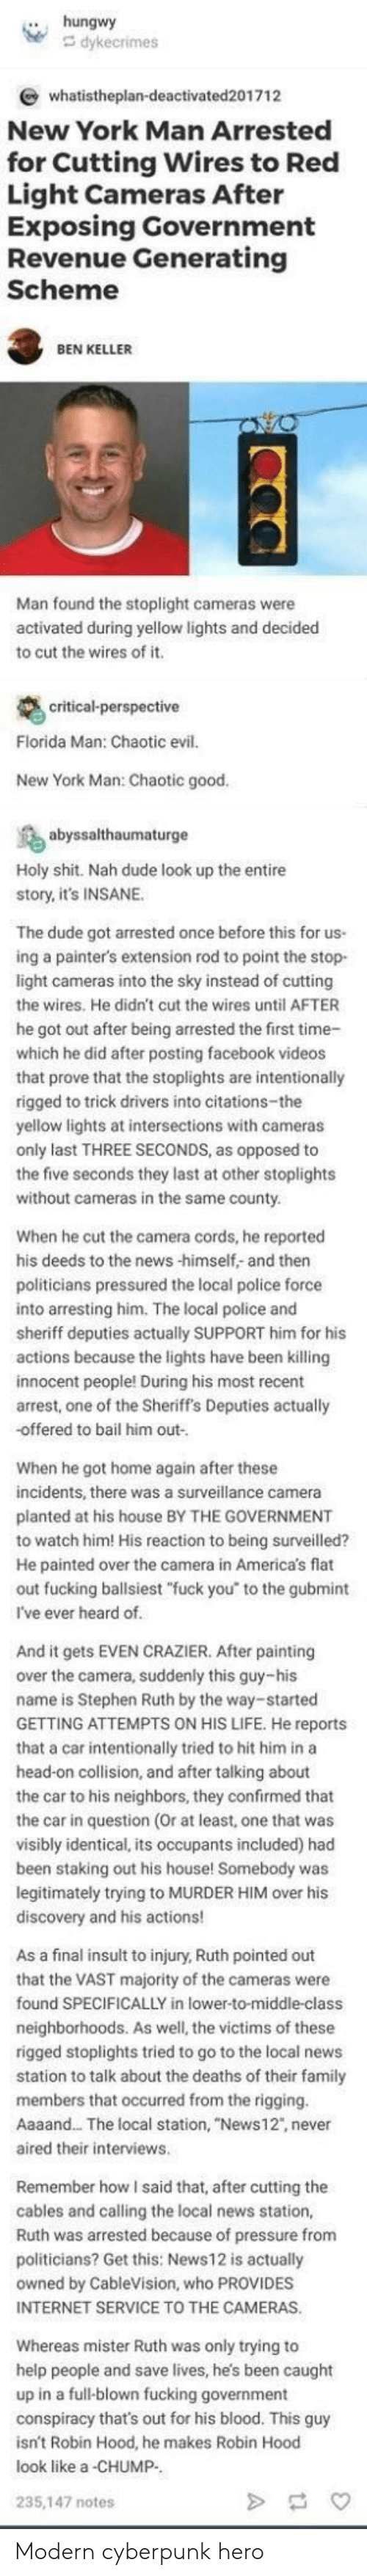 """Dude, Facebook, and Family: hungwy  whatistheplan-deactivated201712  New York Man Arrested  for Cutting Wires to Red  Light Cameras After  Exposing Government  Revenue Generating  Scheme  BEN KELLER  Man found the stoplight cameras were  activated during yellow lights and decided  to cut the wires of it  itical-perspective  Florida Man: Chaotic evil  New York Man: Chaotic good  salthaumaturge  Holy shit. Nah dude look up the entire  story, it's INSANE.  The dude got arrested once before this for us-  ing a painter's extension rod to point the stop  light cameras into the sky instead of cutting  the wires. He didn't cut the wires until AFTER  he got out after being arrested the first time-  which he did after posting facebook videos  that prove that the stoplights are intentionally  rigged to trick drivers into citations-the  yellow lights at intersections with cameras  only last THREE SECONDS, as opposed to  the five seconds they last at other stoplights  without cameras in the same county  When he cut the camera cords, he reported  his deeds to the news -himself,- and then  politicians pressured the local police force  into arresting him. The local police and  sheriff deputies actually SUPPORT him for his  actions because the lights have been killing  innocent people! During his most recent  arrest, one of the Sheriff's Deputies actually  -offered to bail him out  When he got home again after these  incidents, there was a surveillance camera  planted at his house BY THE GOVERNMENT  to watch him! His reaction to being surveilled?  He painted over the camera in Americas flat  out fucking ballsiest """"fuck you to the gubmint  I've ever heard of  And it gets EVEN CRAZIER. After painting  over the camera, suddenly this guy-his  name is Stephen Ruth by the way-started  GETTING ATTEMPTS ON HIS LIFE. He reports  that a car intentionally tried to hit him ina  head-on collision, and after talking about  the car to his neighbors, they confirmed that  the car in question (Or at """